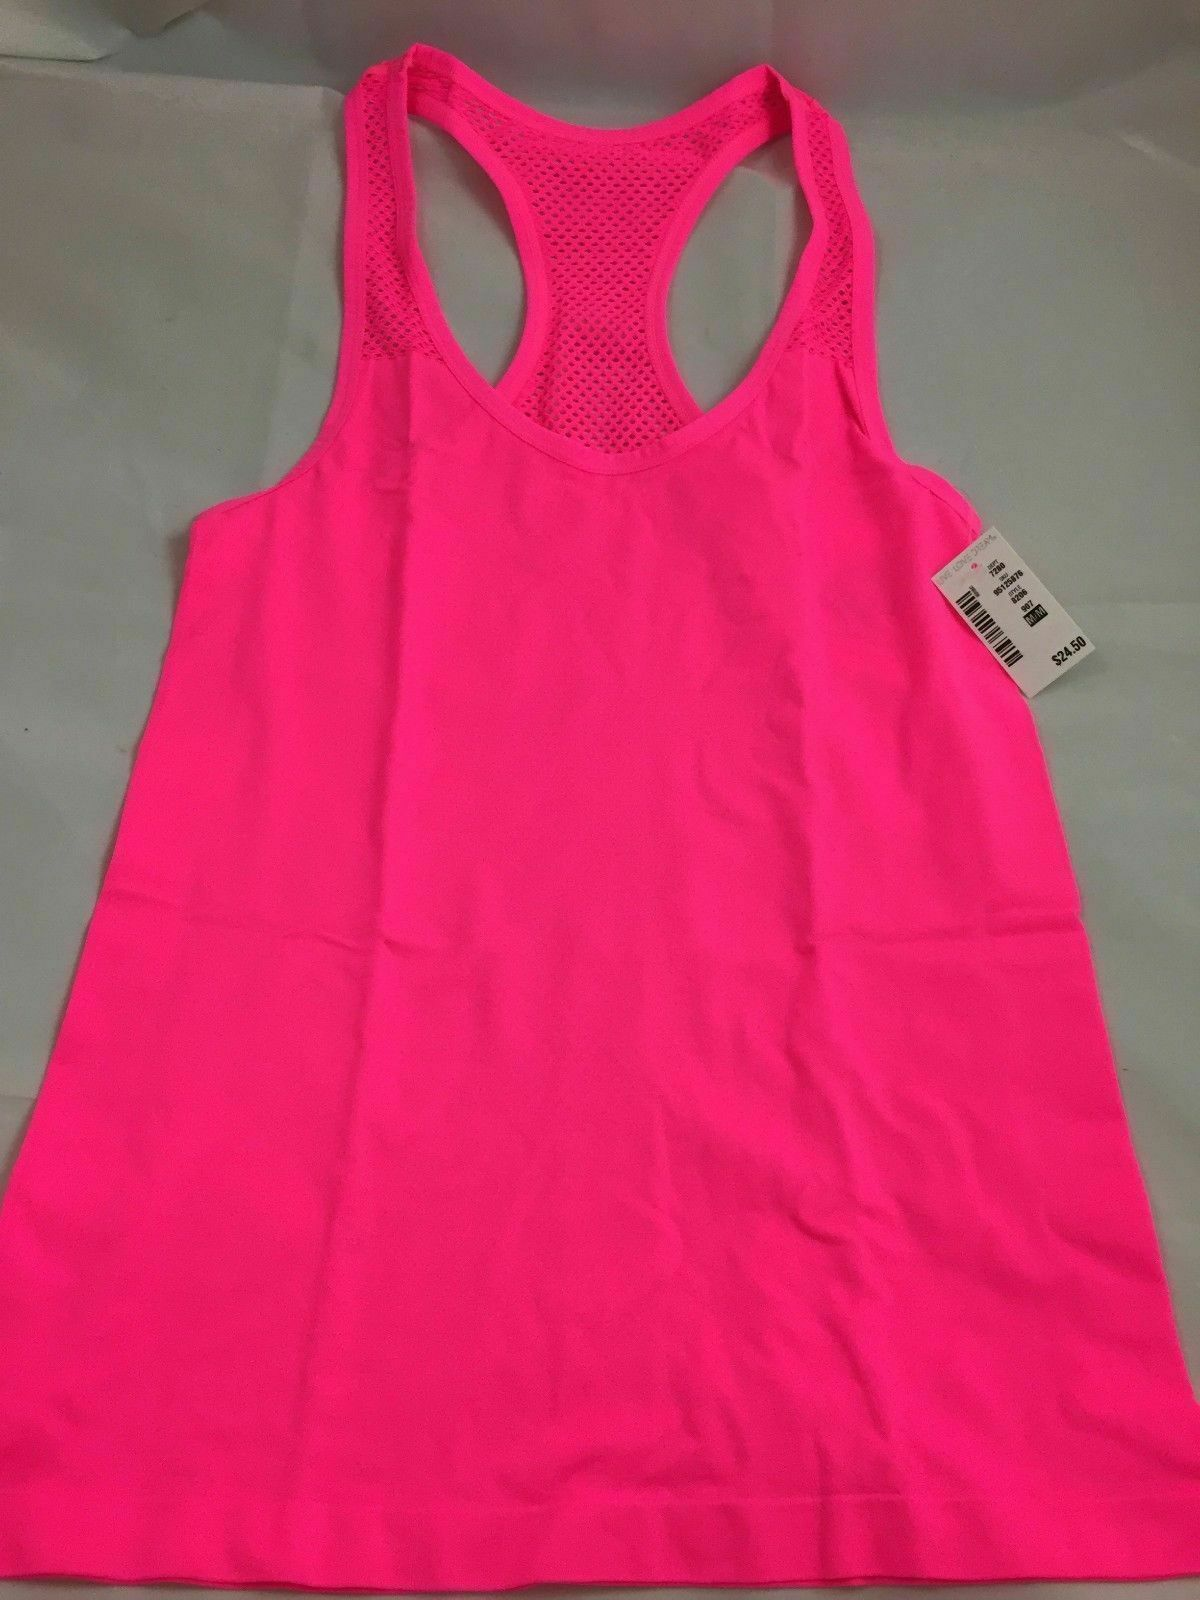 Aeropostale Live Love Dream Yoga Tank Shirt Pink M Clothing Fashion Cute Gift